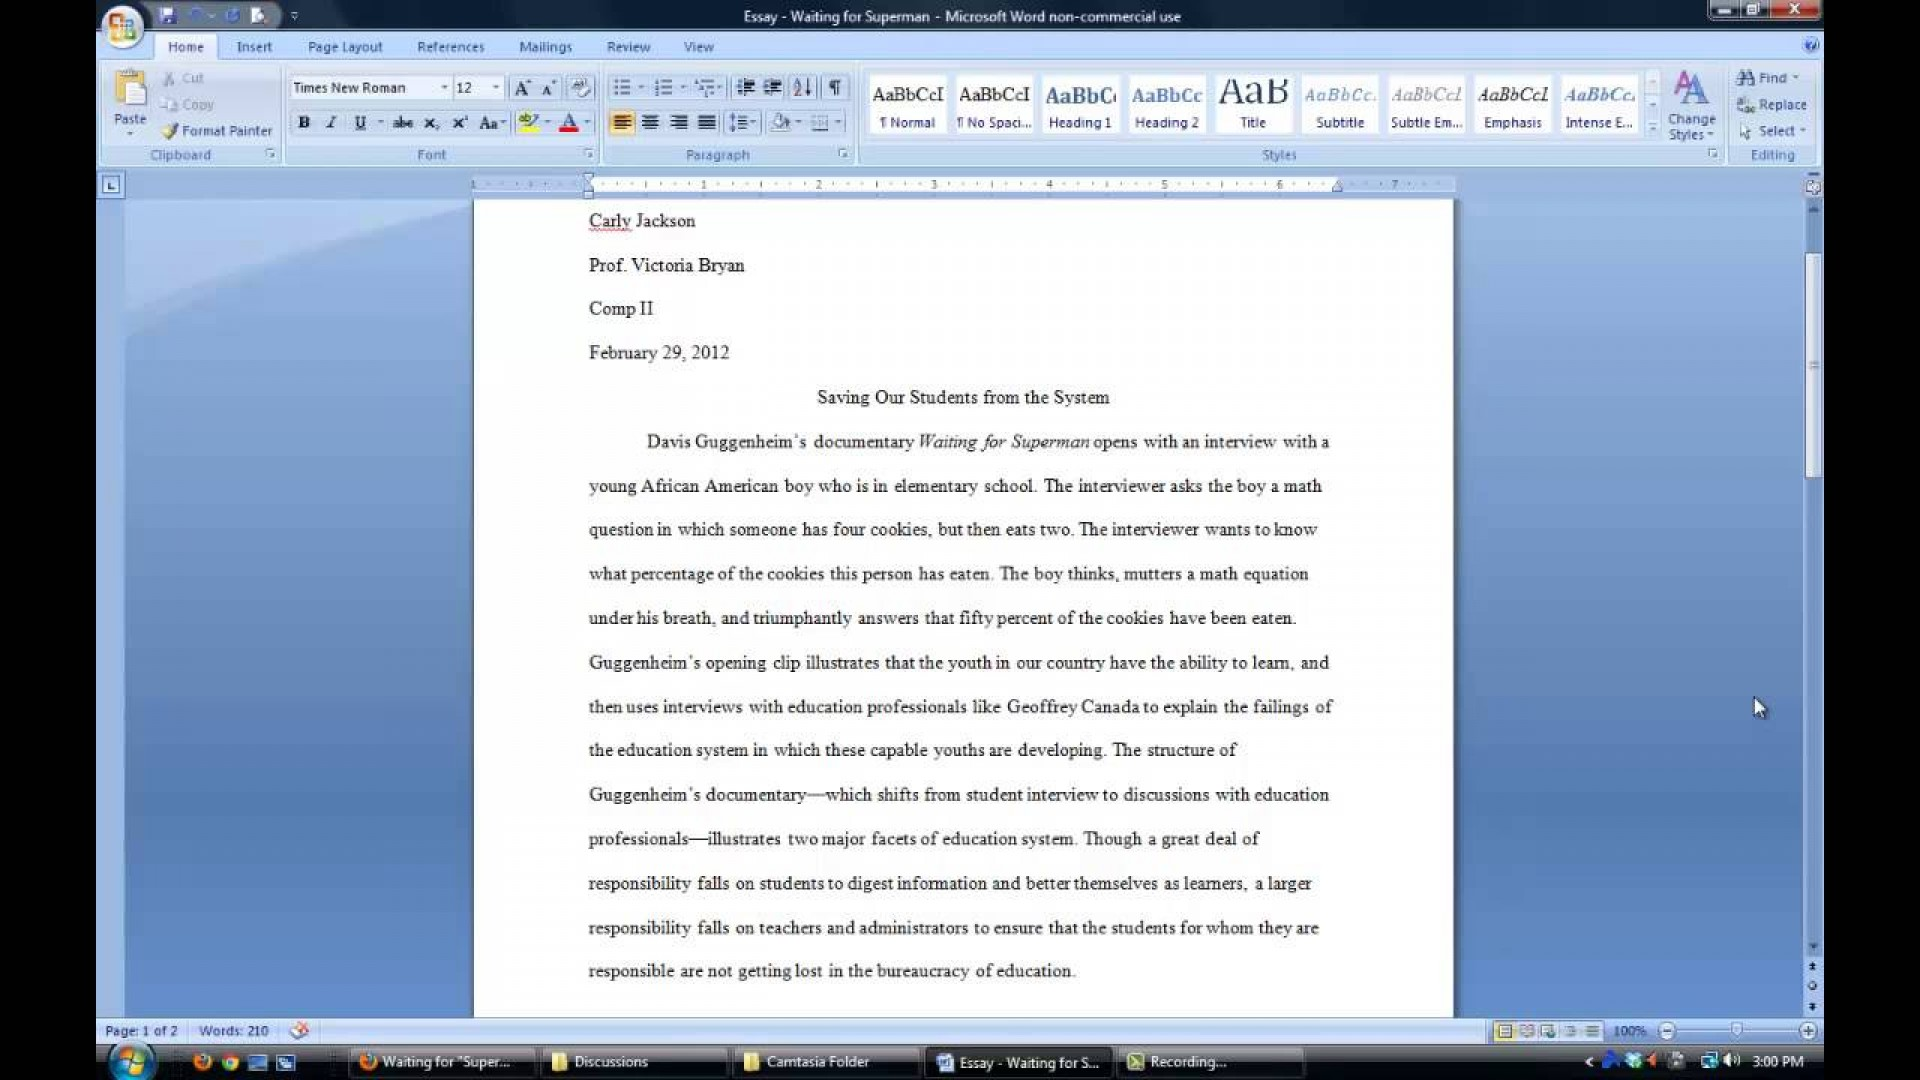 014 Maxresdefault Essay Example How To Cite Poem In Outstanding A An Put Block Quote Mla Properly Apa 1920